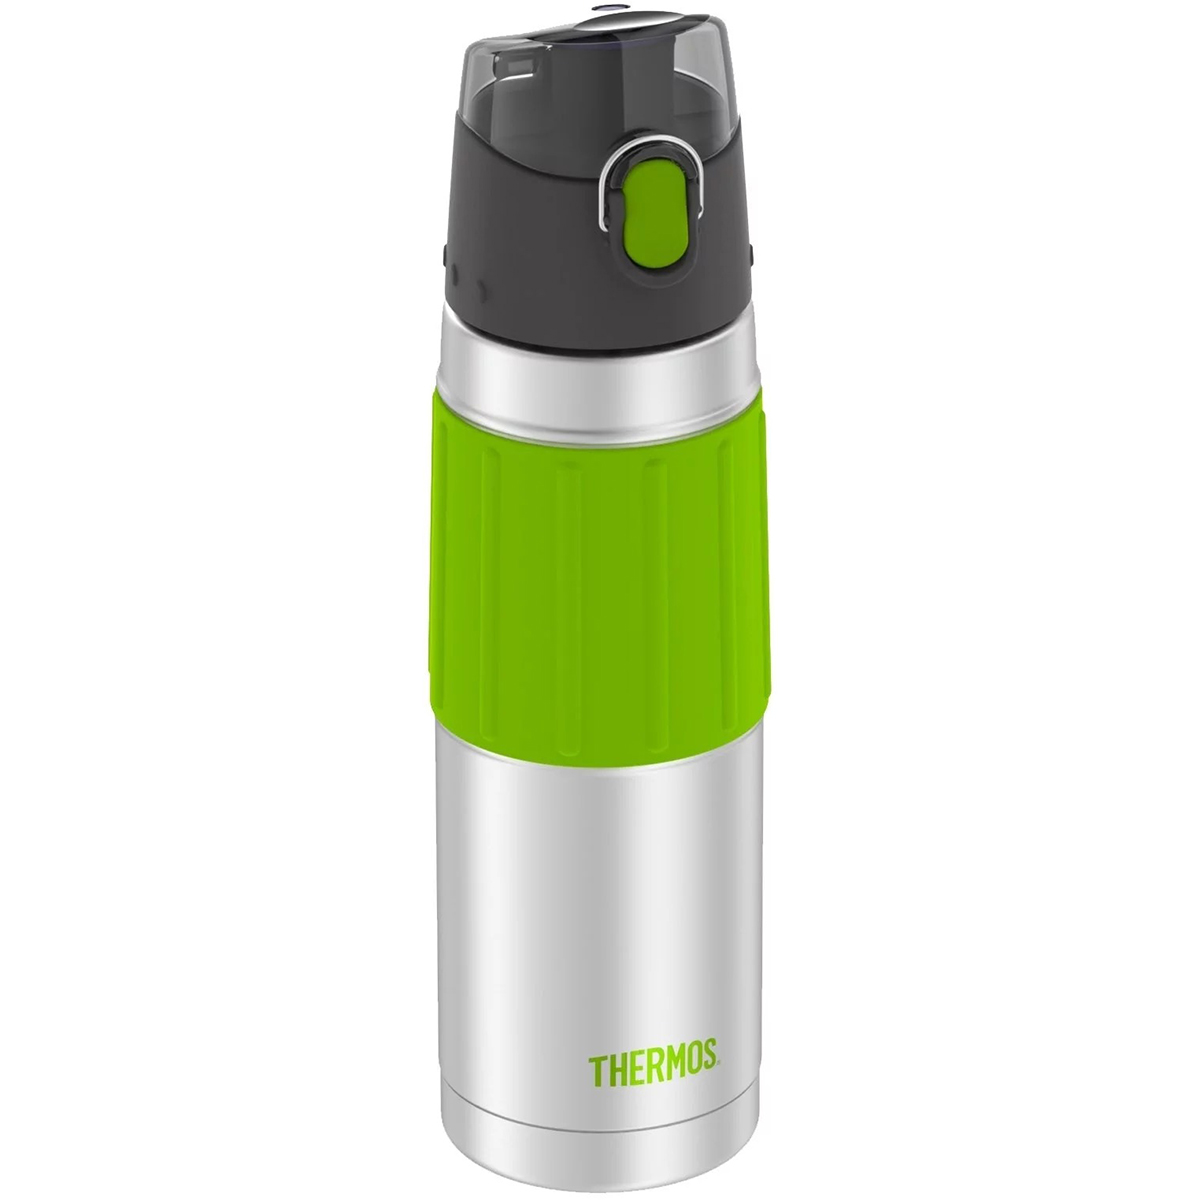 Thermos-18-oz-Vacuum-Insulated-Stainless-Steel-Hydration-Water-Bottle thumbnail 7